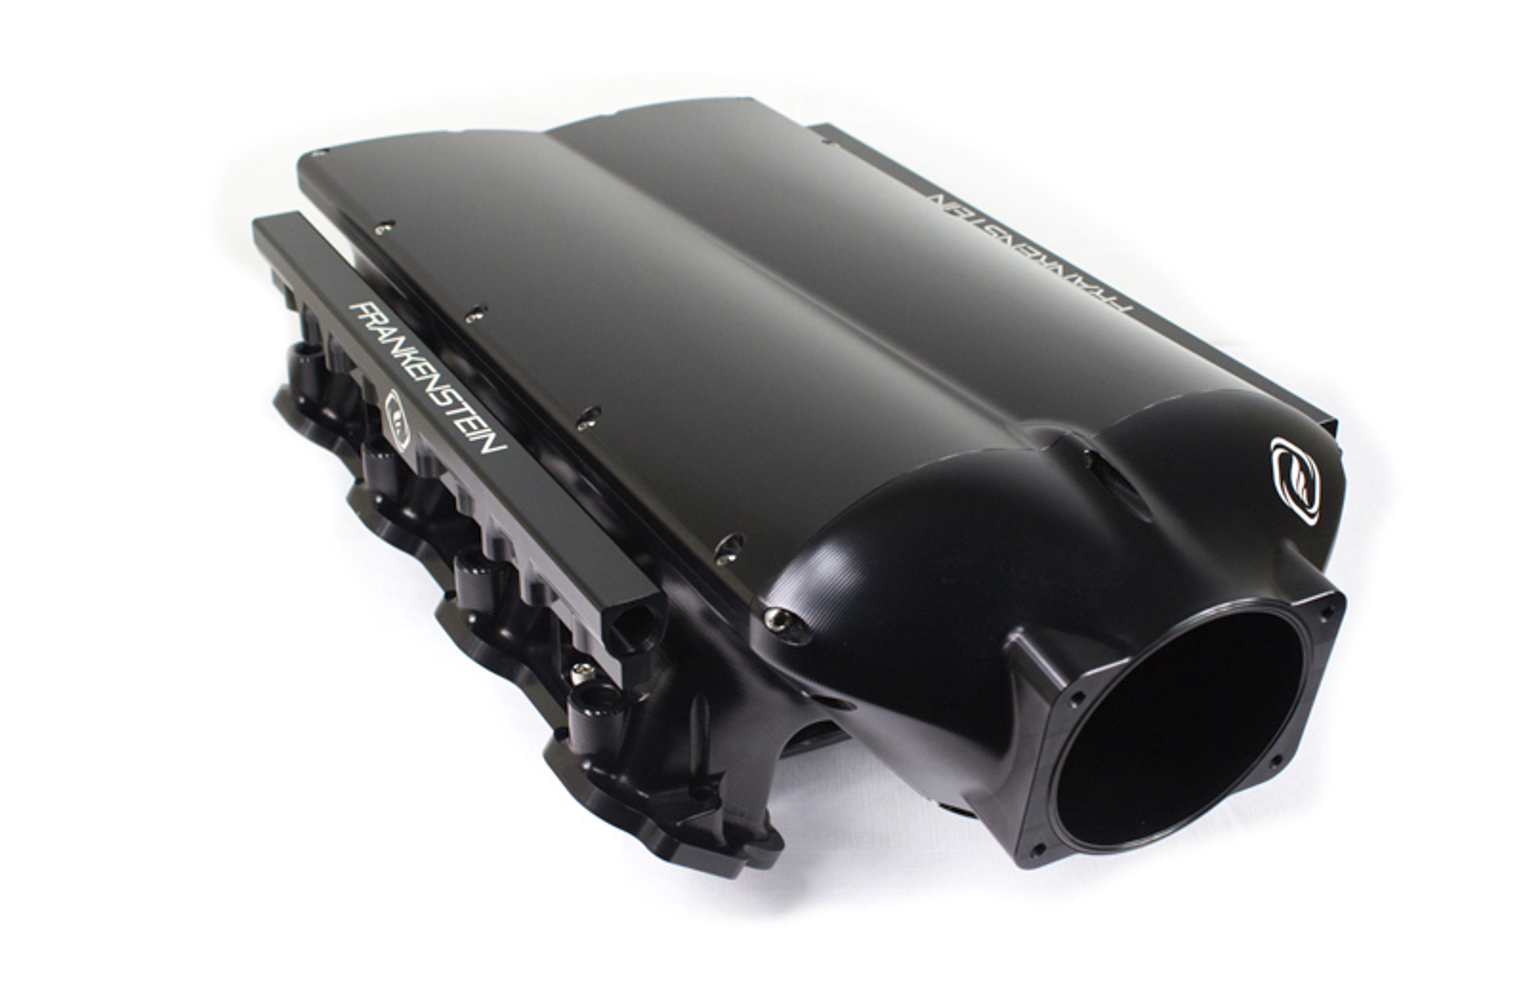 Frankenstein Engine Dynamics 217001-BLK Intake Manifold, LowPro, Fuel Rails Included, Aluminum, Black Anodize, LS7, GM LS-Series, Kit